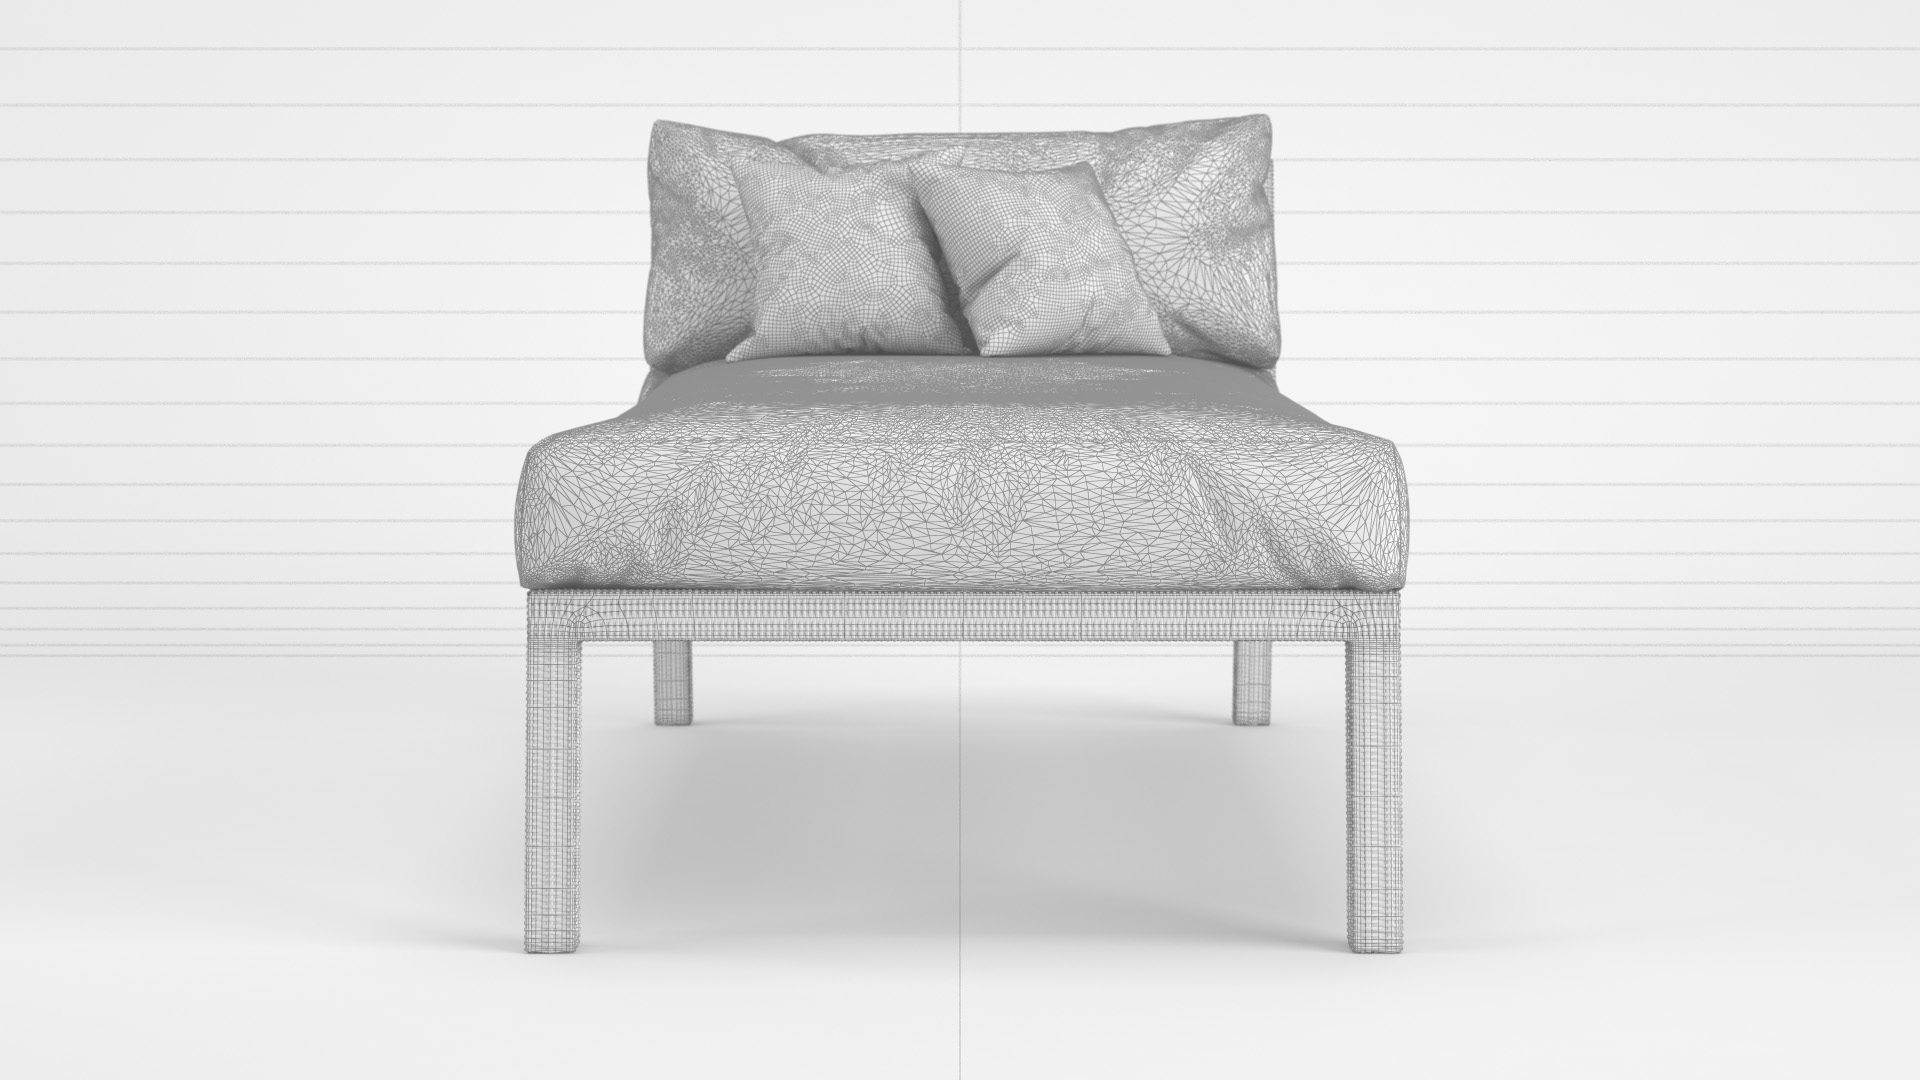 Versus_Lounger_WhiteSet_01_wire_0002